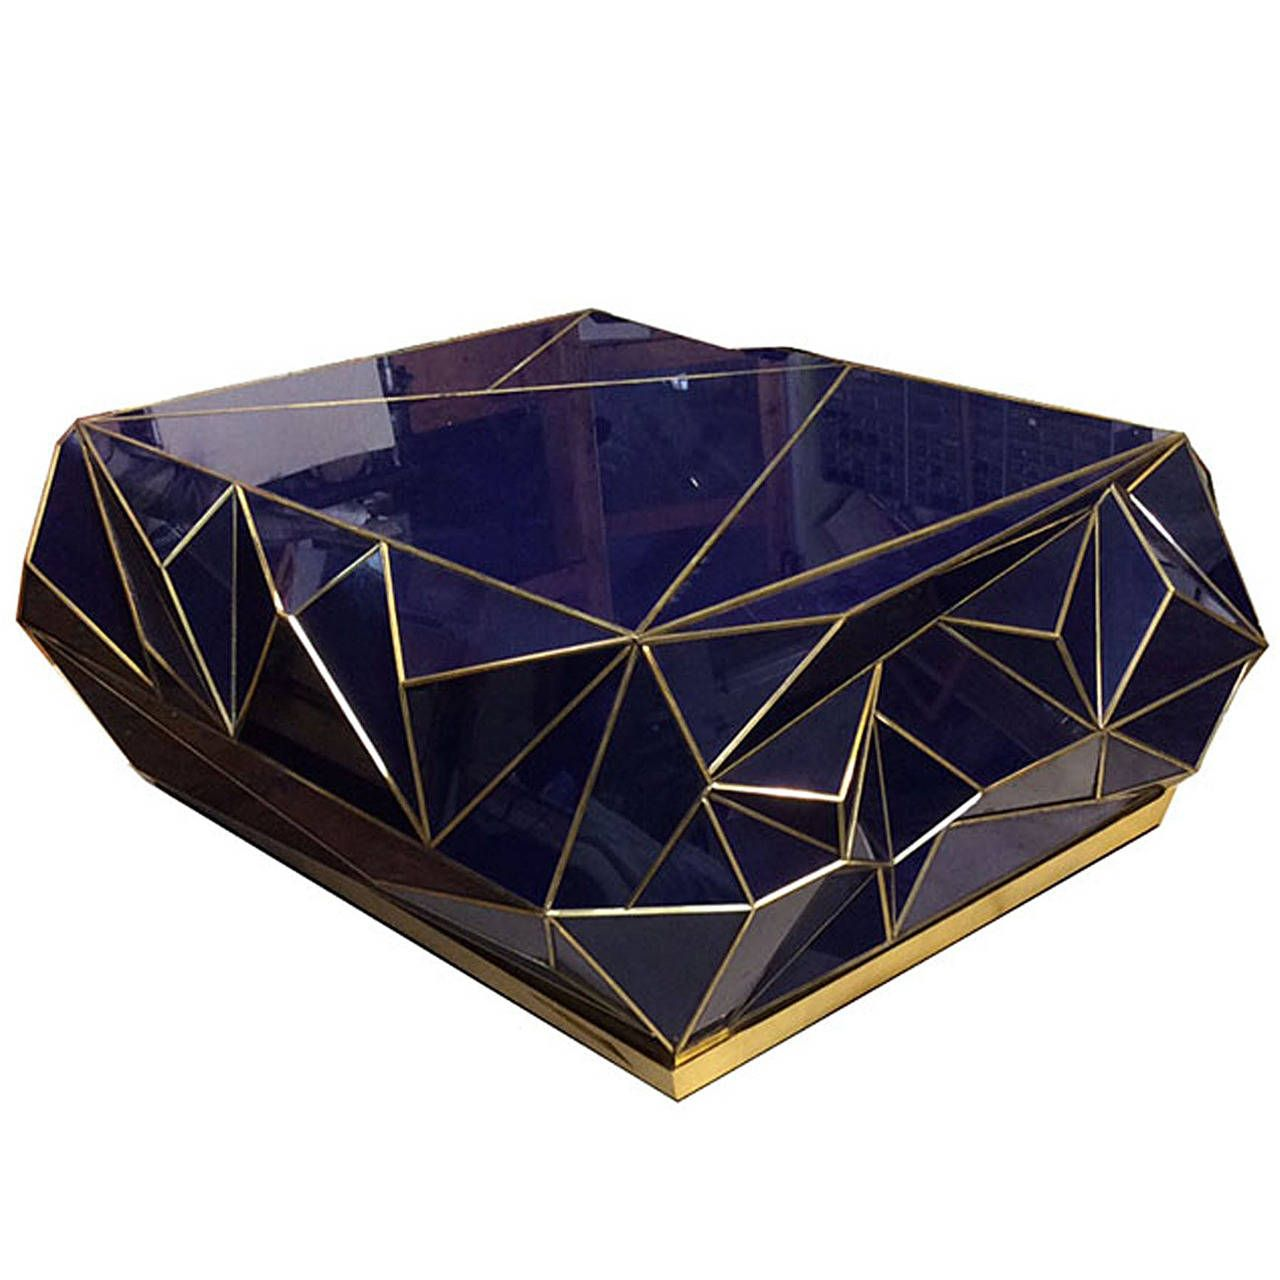 Geometric Glass Coffee Table: Contemporary Brass-Trimmed Glass Geometric Coffee Table